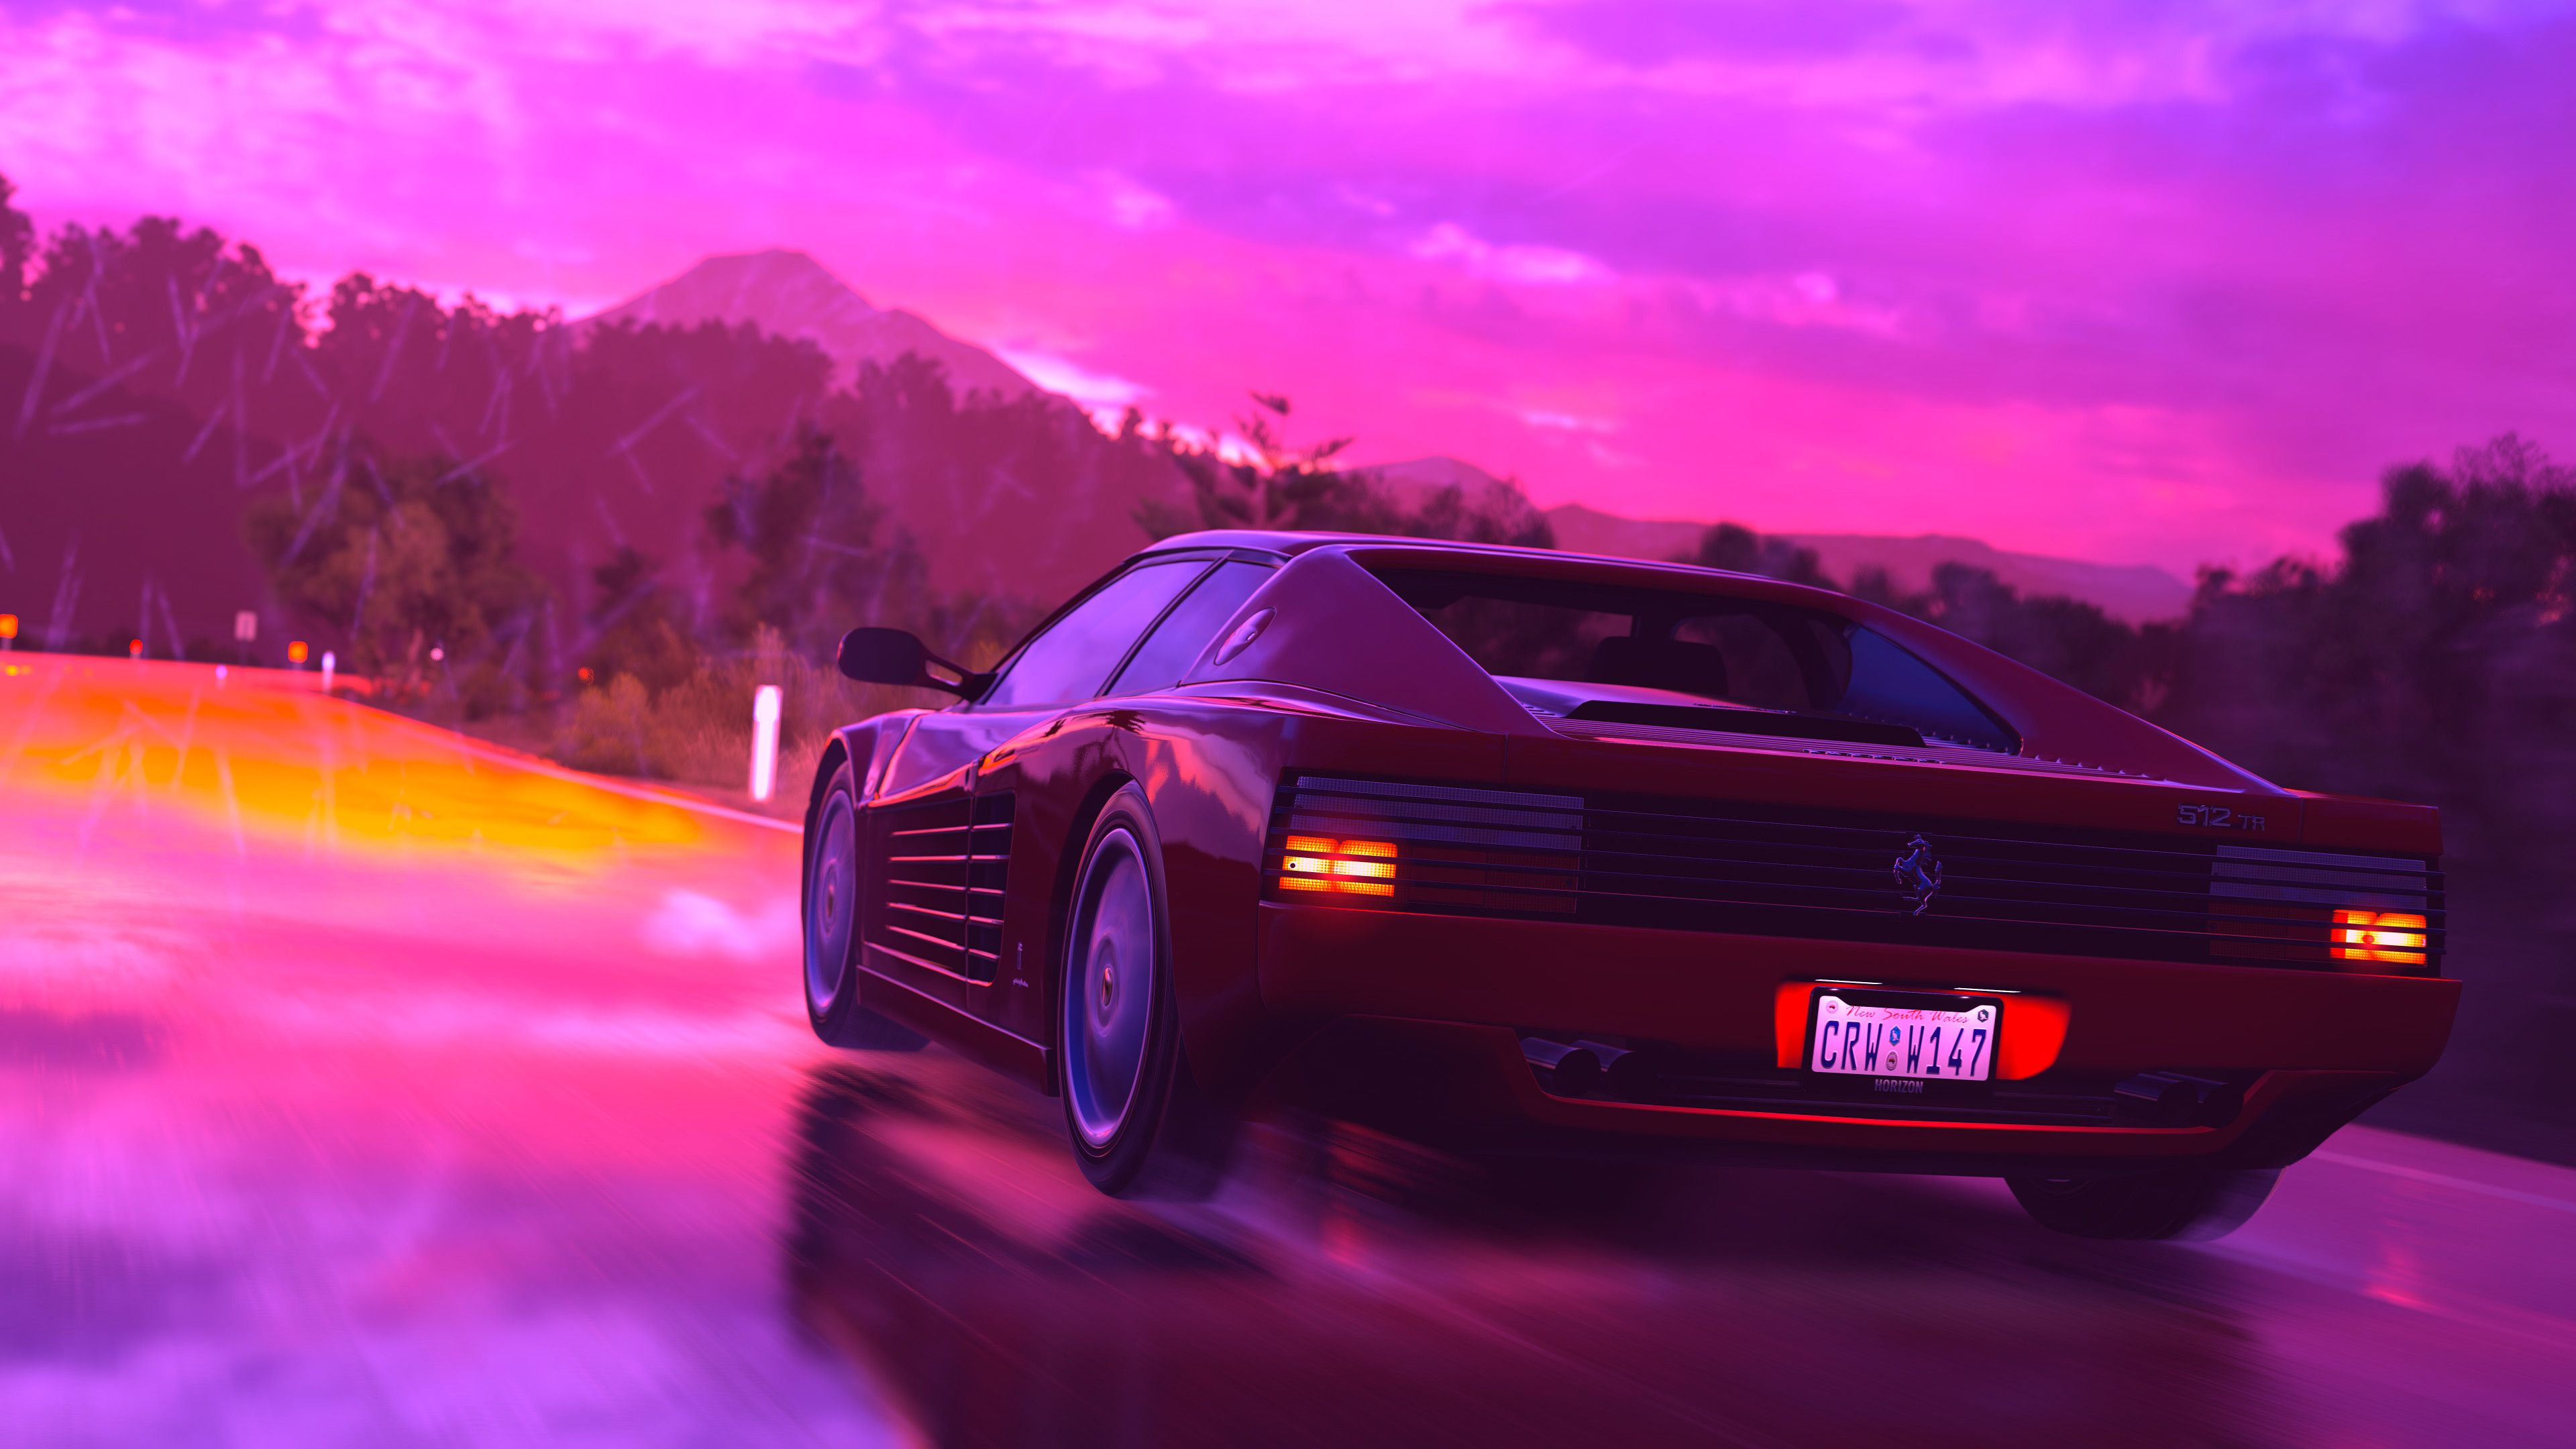 3840x2160 Artistic Retro Wave Sport Car Ferrari Red Car